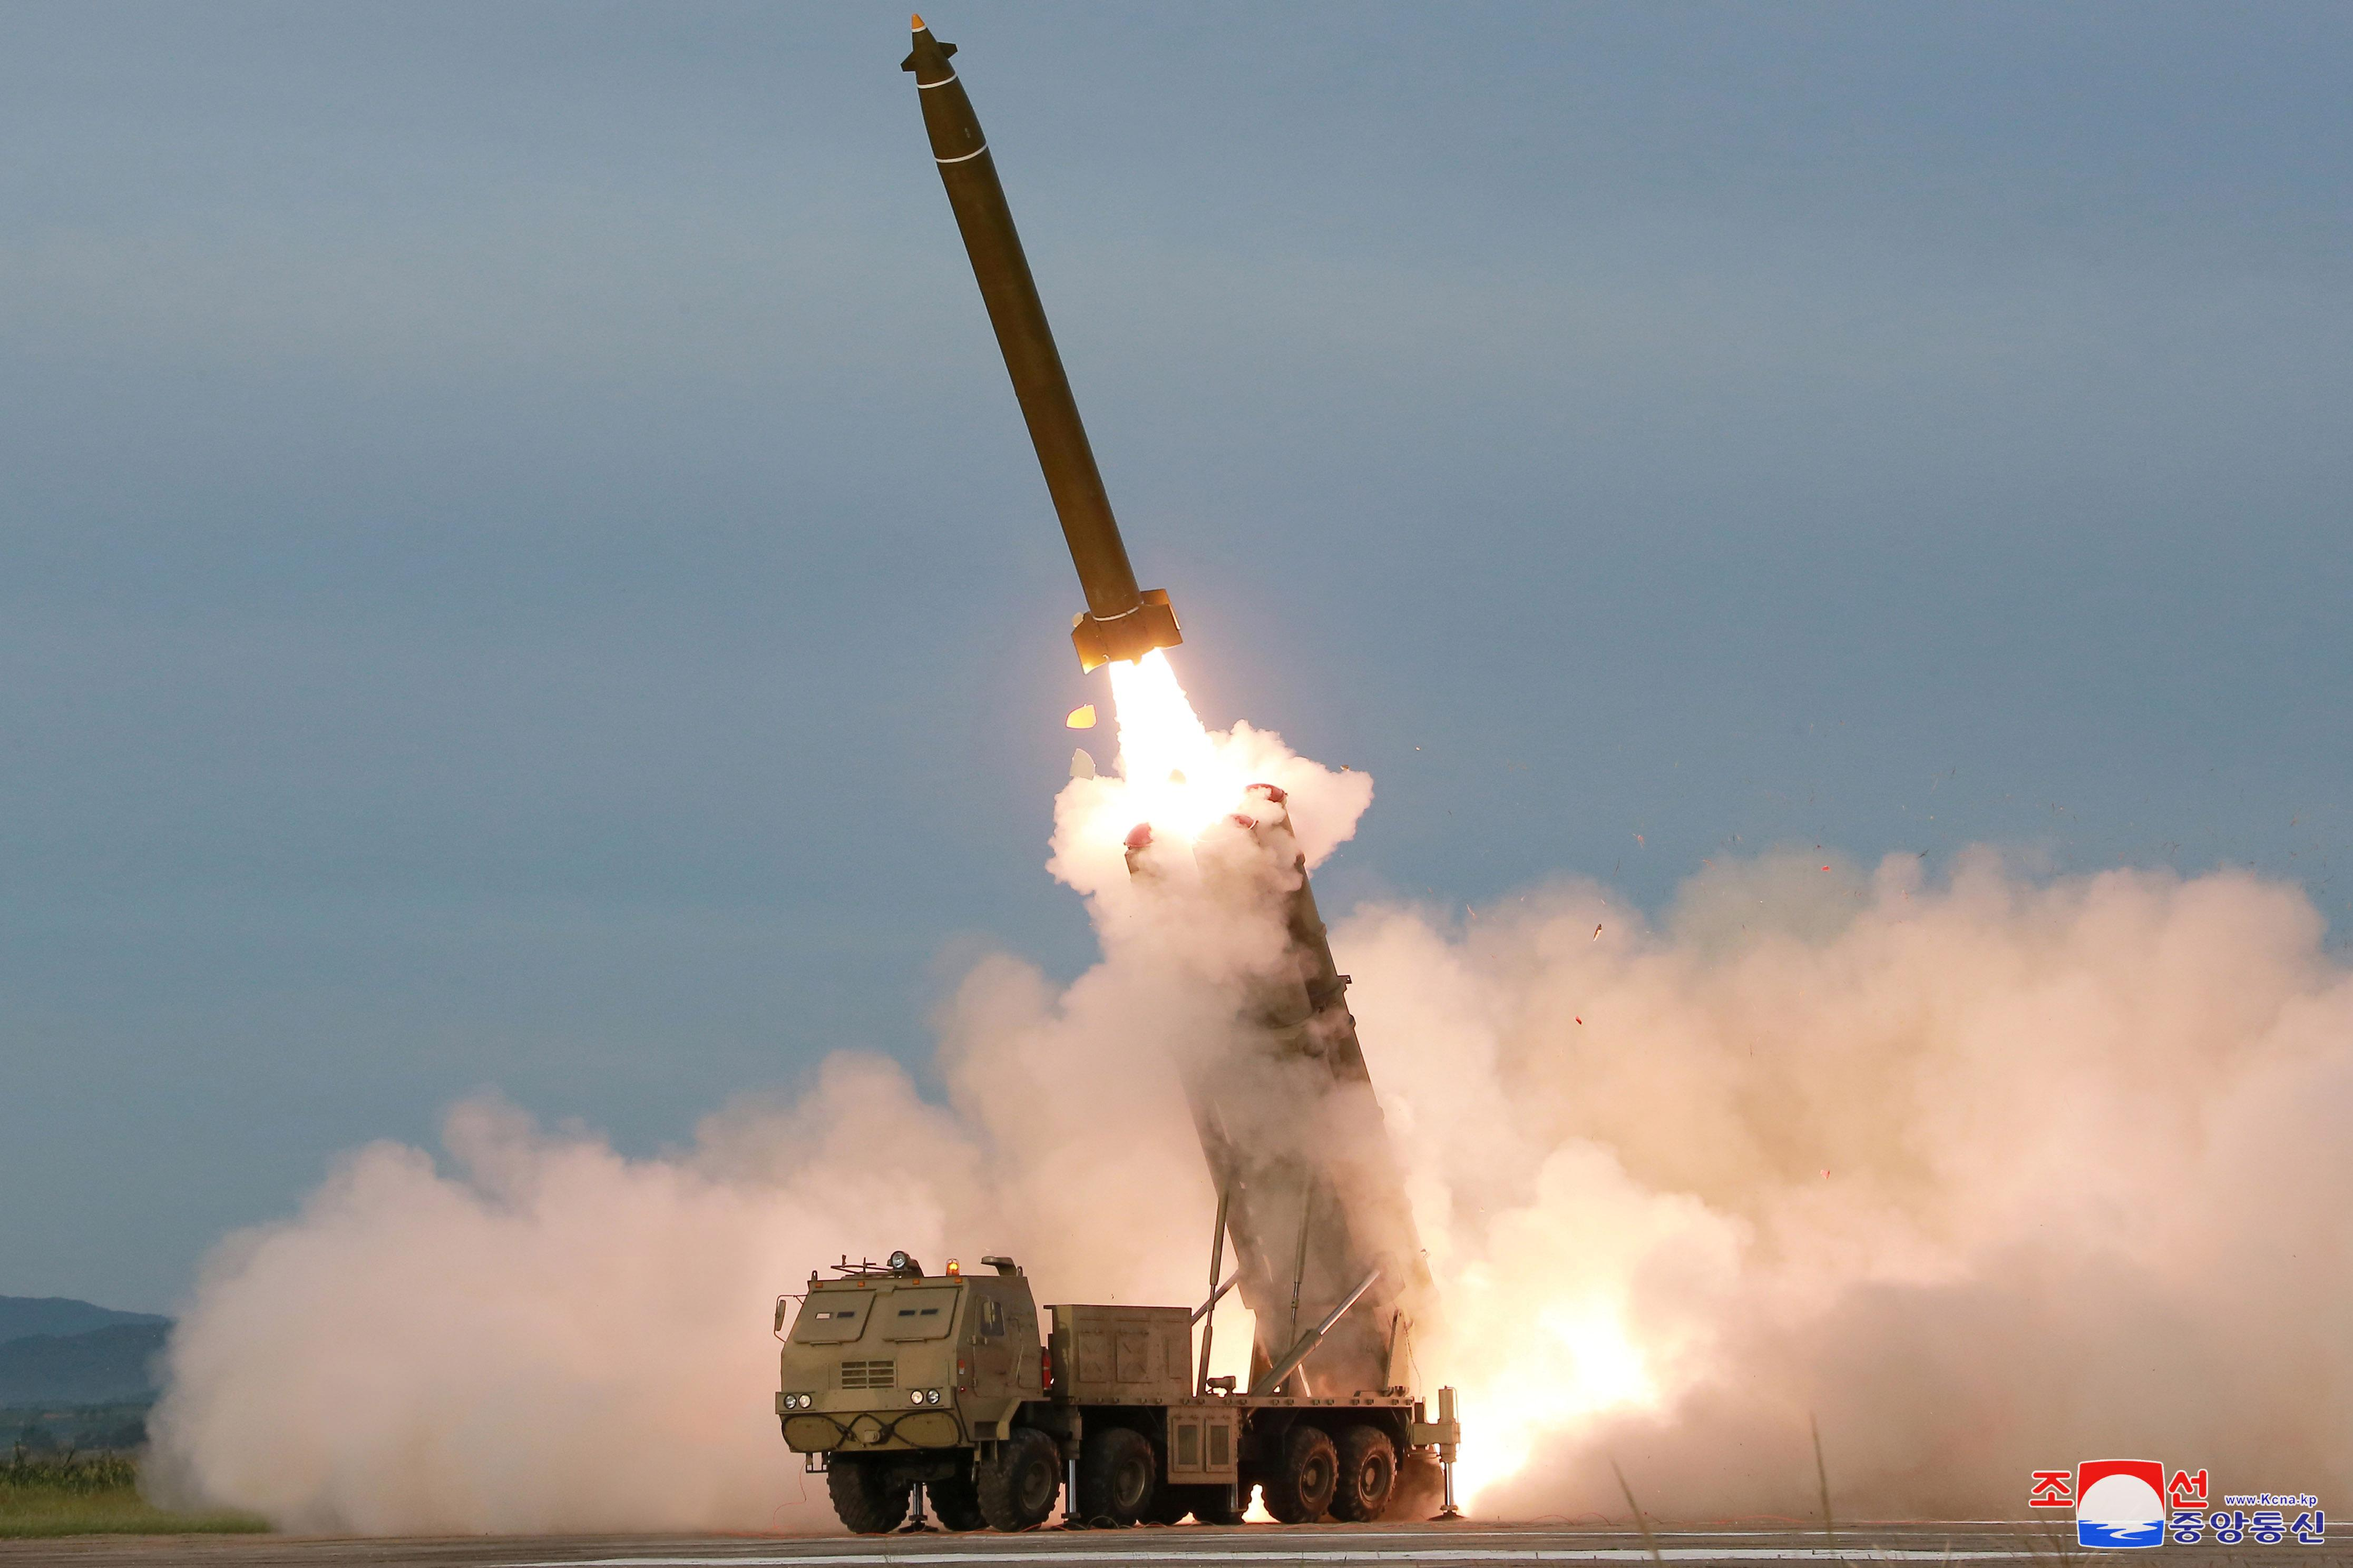 Japan says North Korea developing warheads to penetrate missile defenses